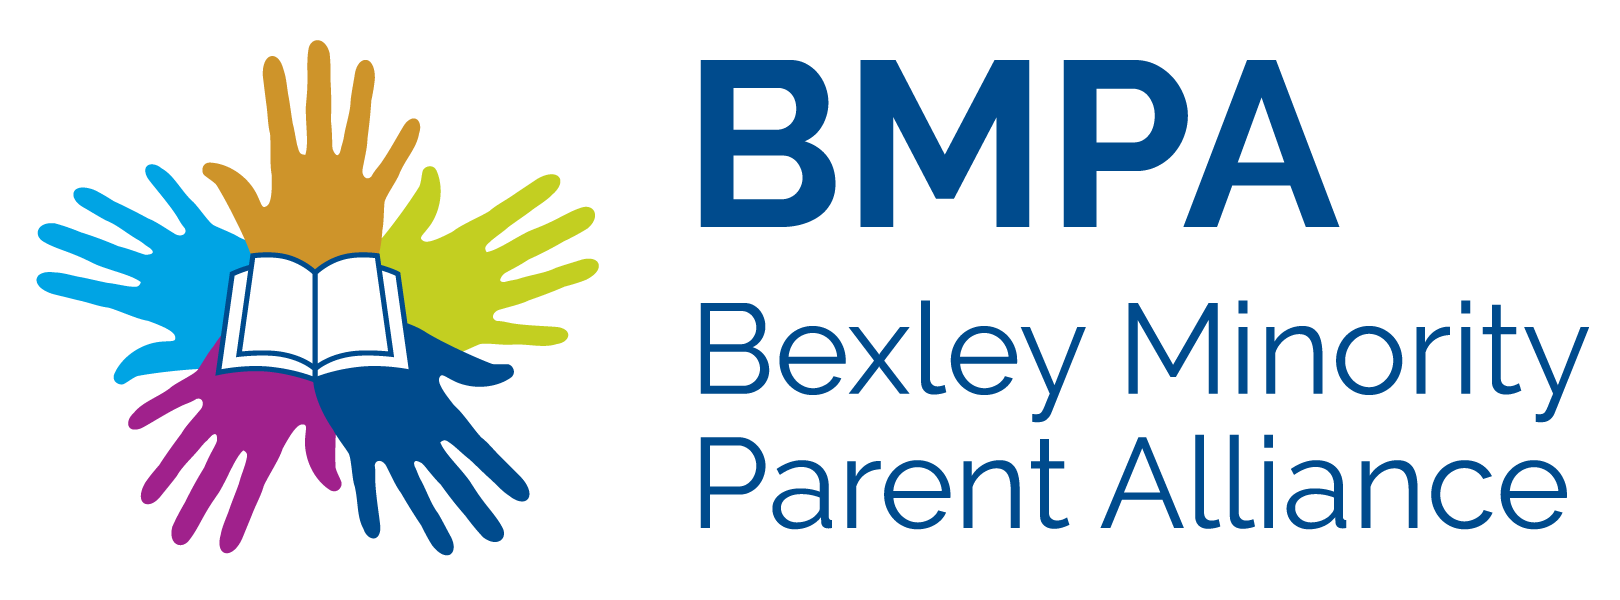 Bexley Minority Parent Alliance Logo